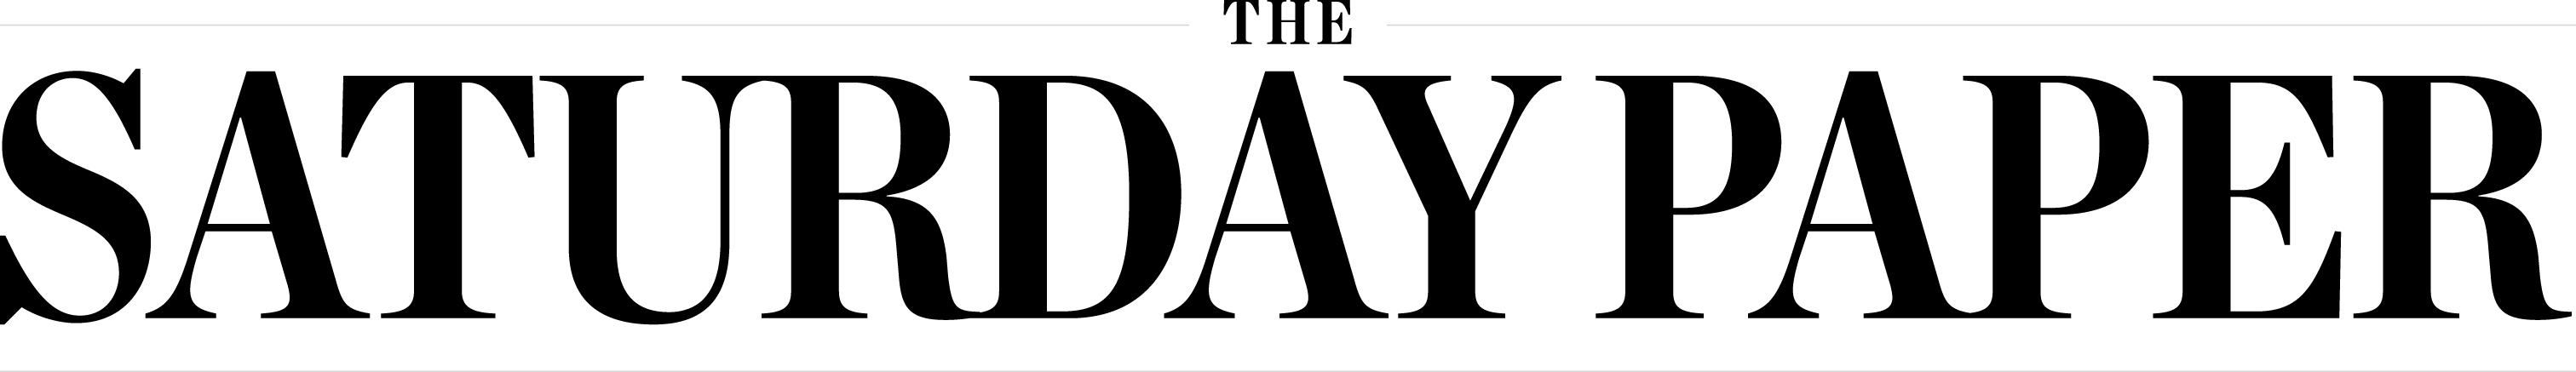 TheSaturdayPaper-logo-black